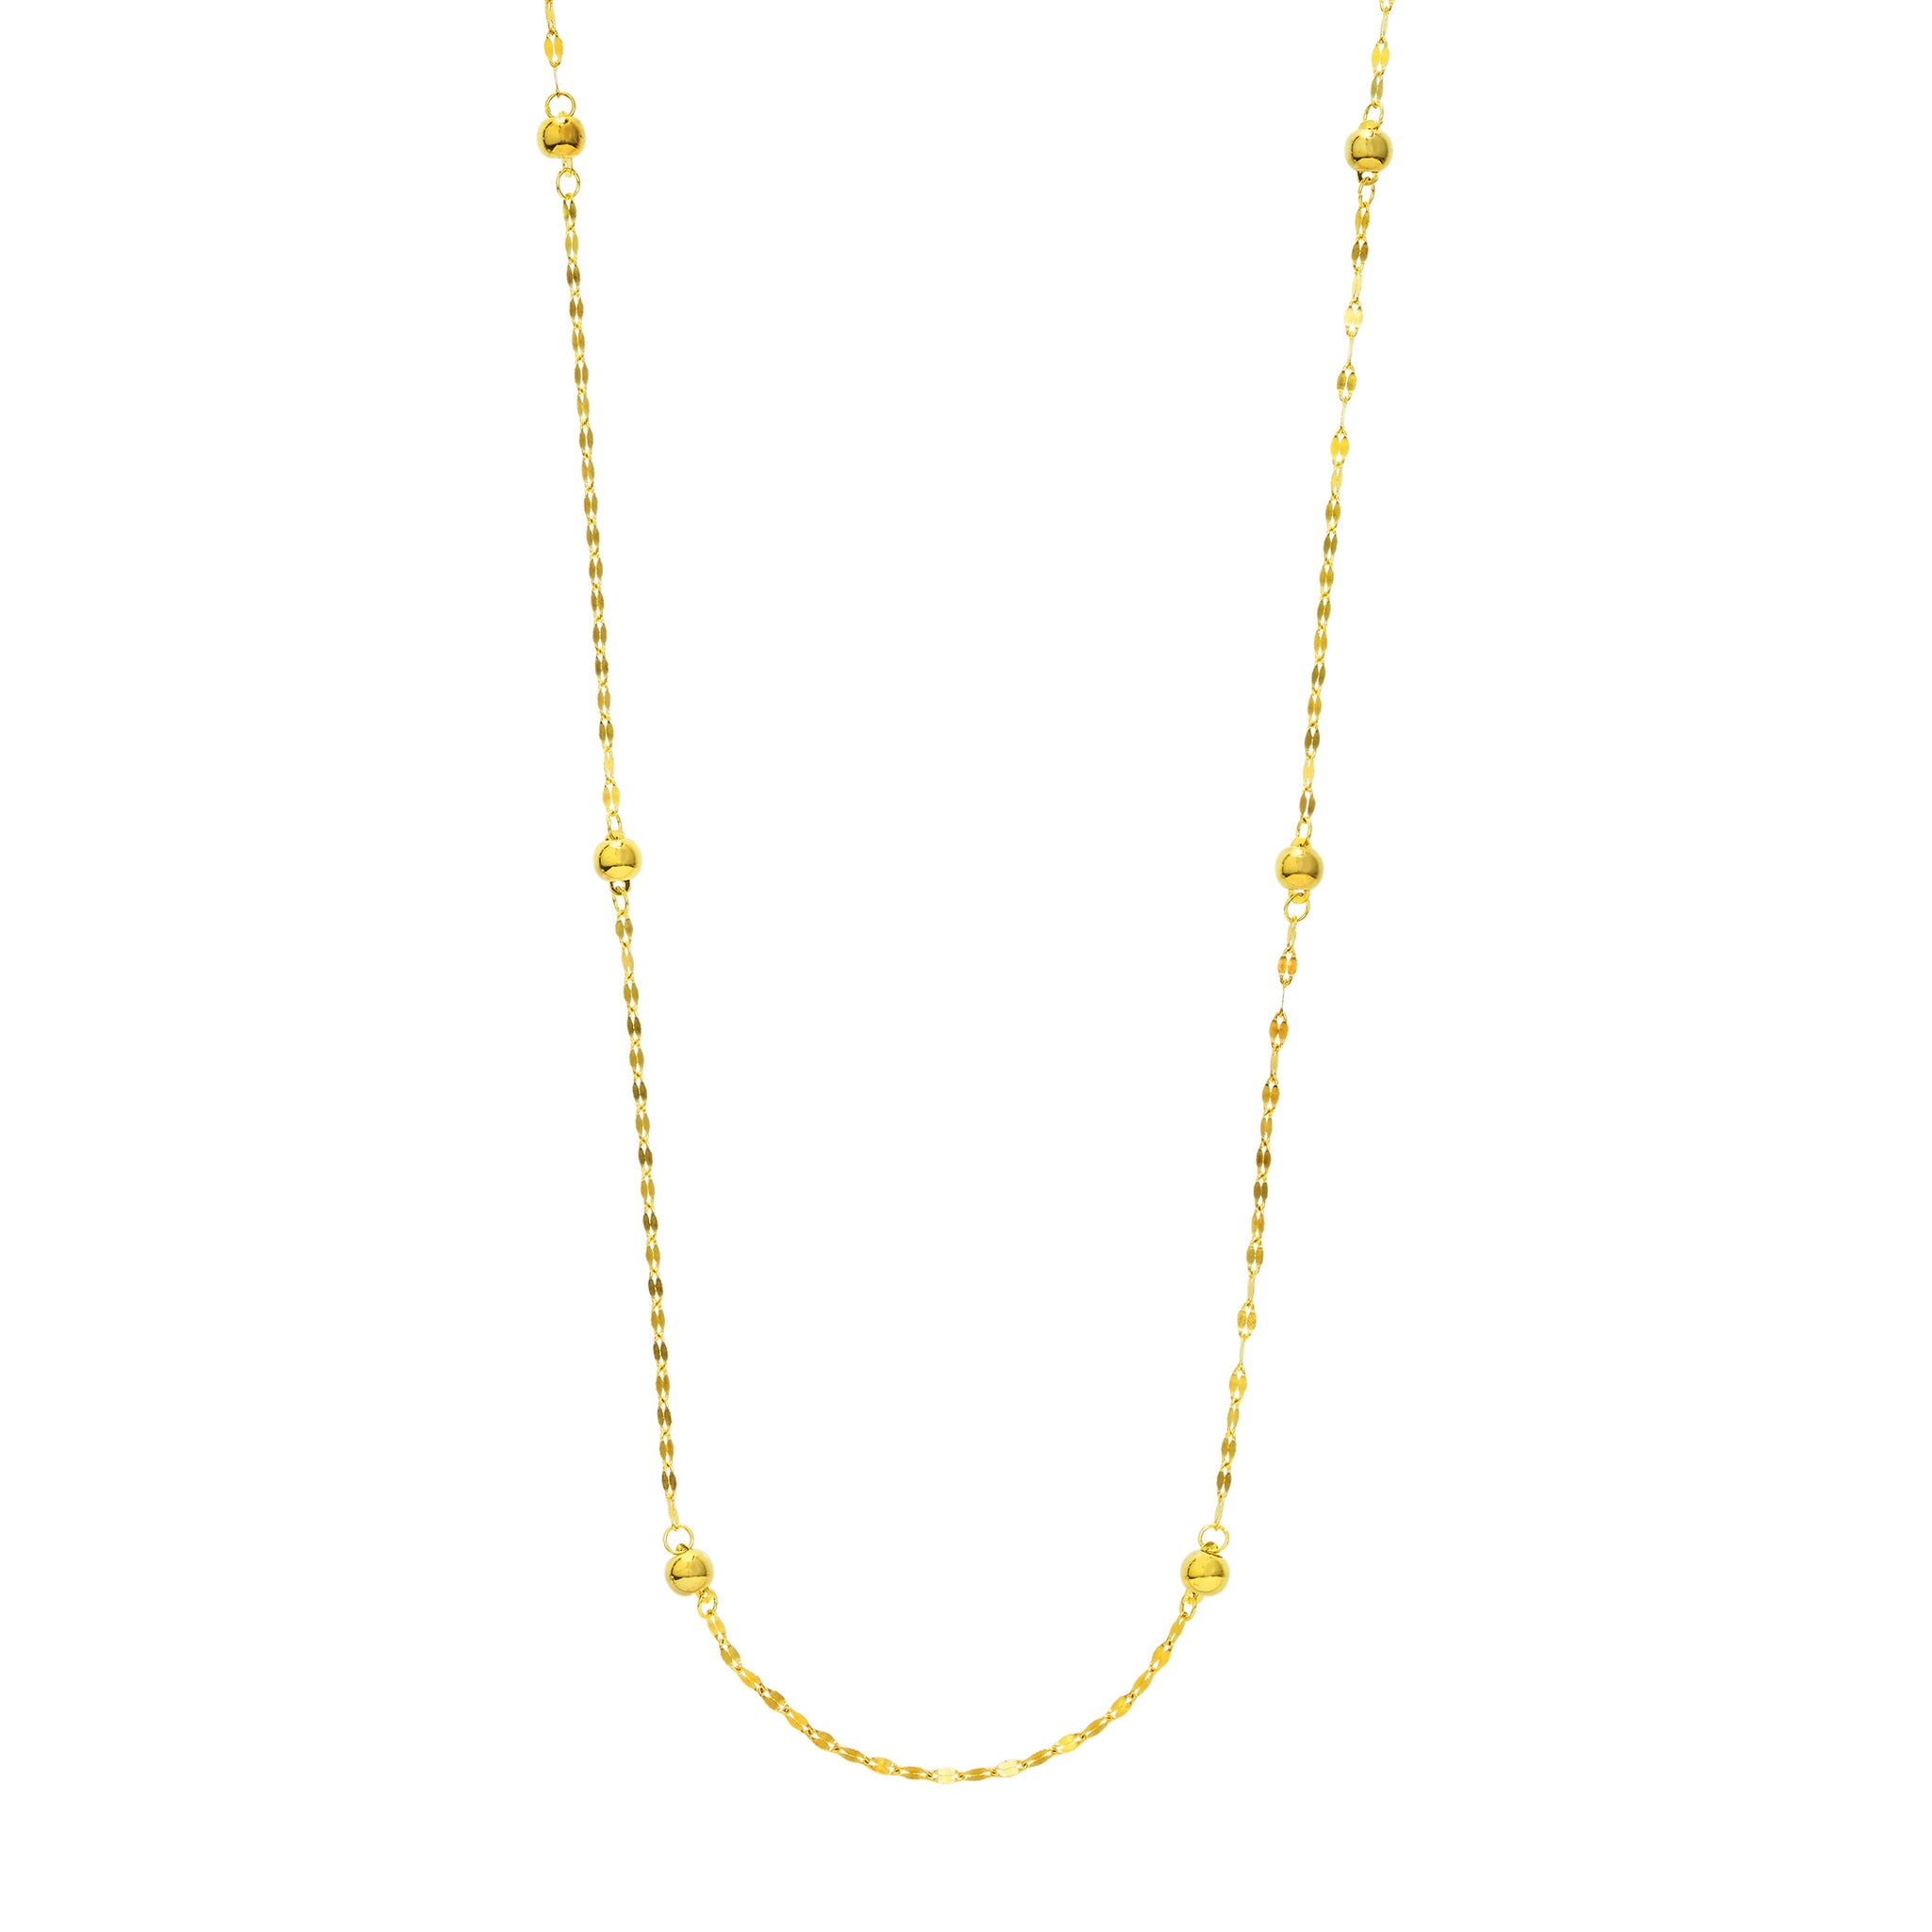 Hemsleys Collection 14K Yellow Gold Forzentina Link & Bead By-The-Yard Necklace